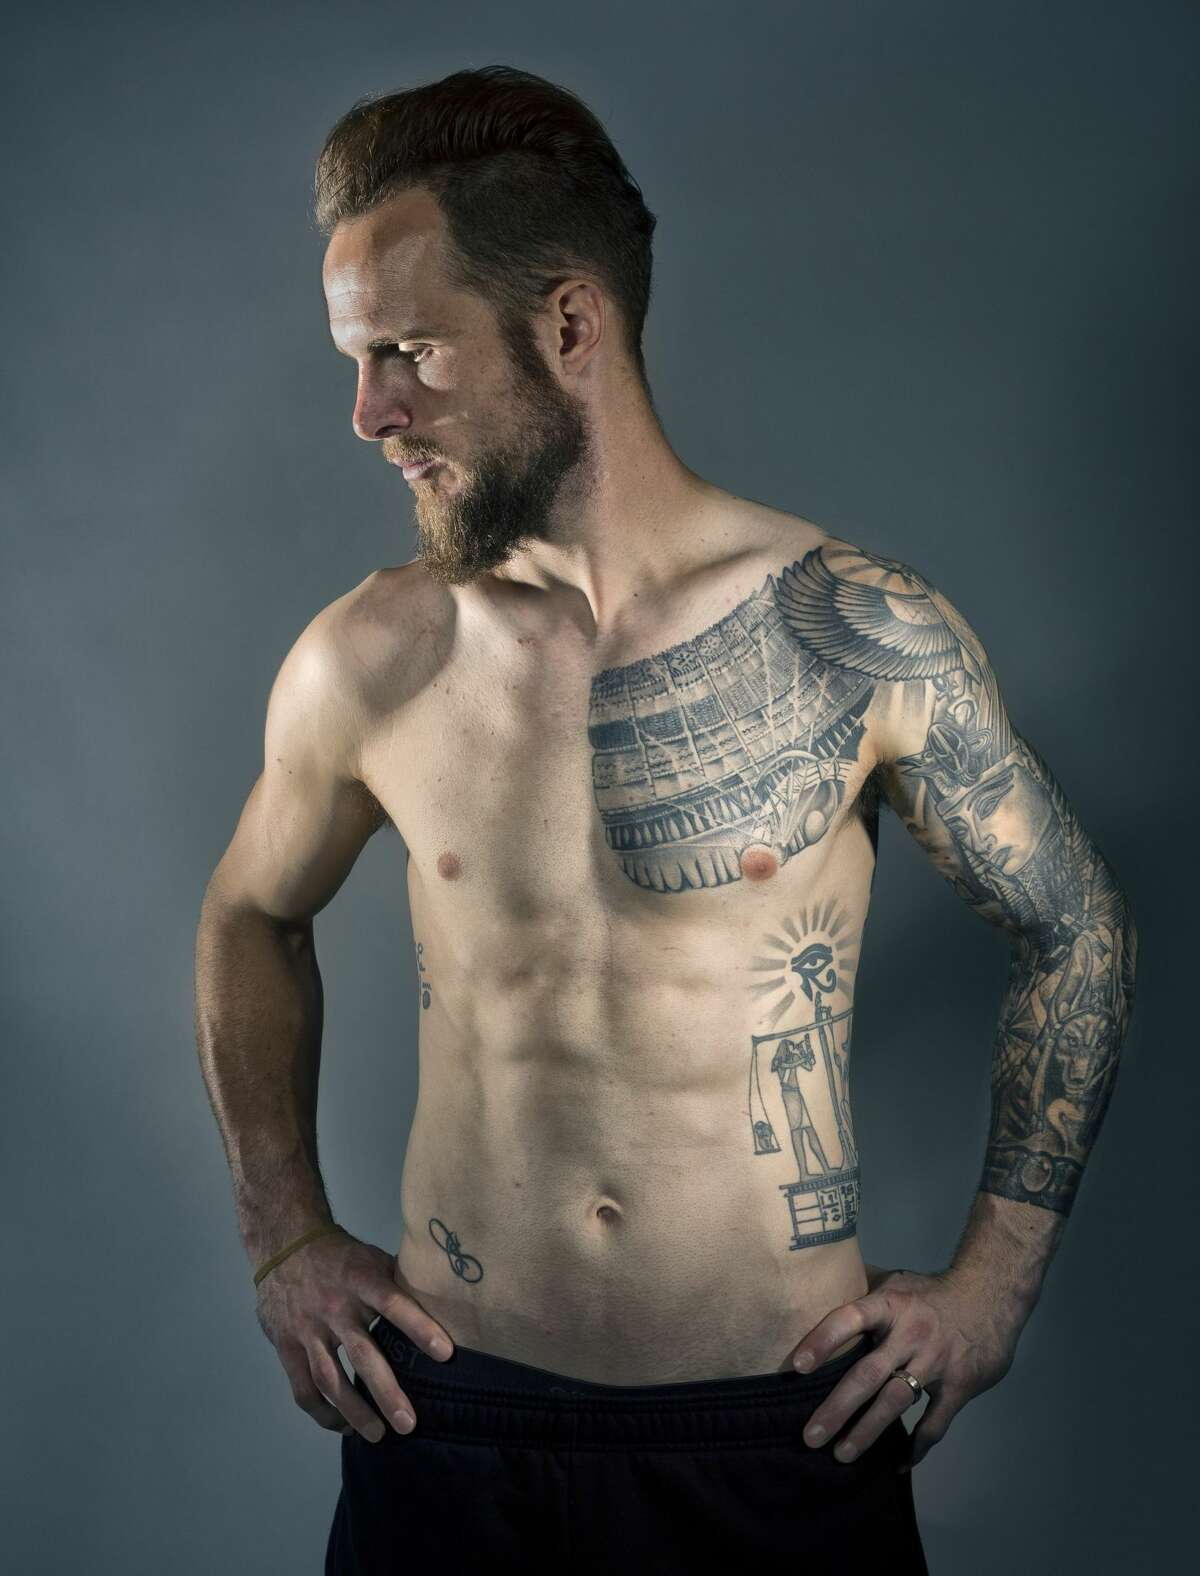 """""""Most of the artsy ones are all Egyptian themed. I studied classical civilization when I was in college, so I have always been fascinated by Egyptian stuff."""" said Stefan Frei about his tattoos. Frei has been the goal keeper for the Sounders since 2014. He has a full sleeve and back piece, as well as his and his wife's initials and a quote from the Book of the Dead that reads """"pay attention to what you do in life because all your actions will be weighed in the end."""" (Genna Martin, seattlepi.com)"""